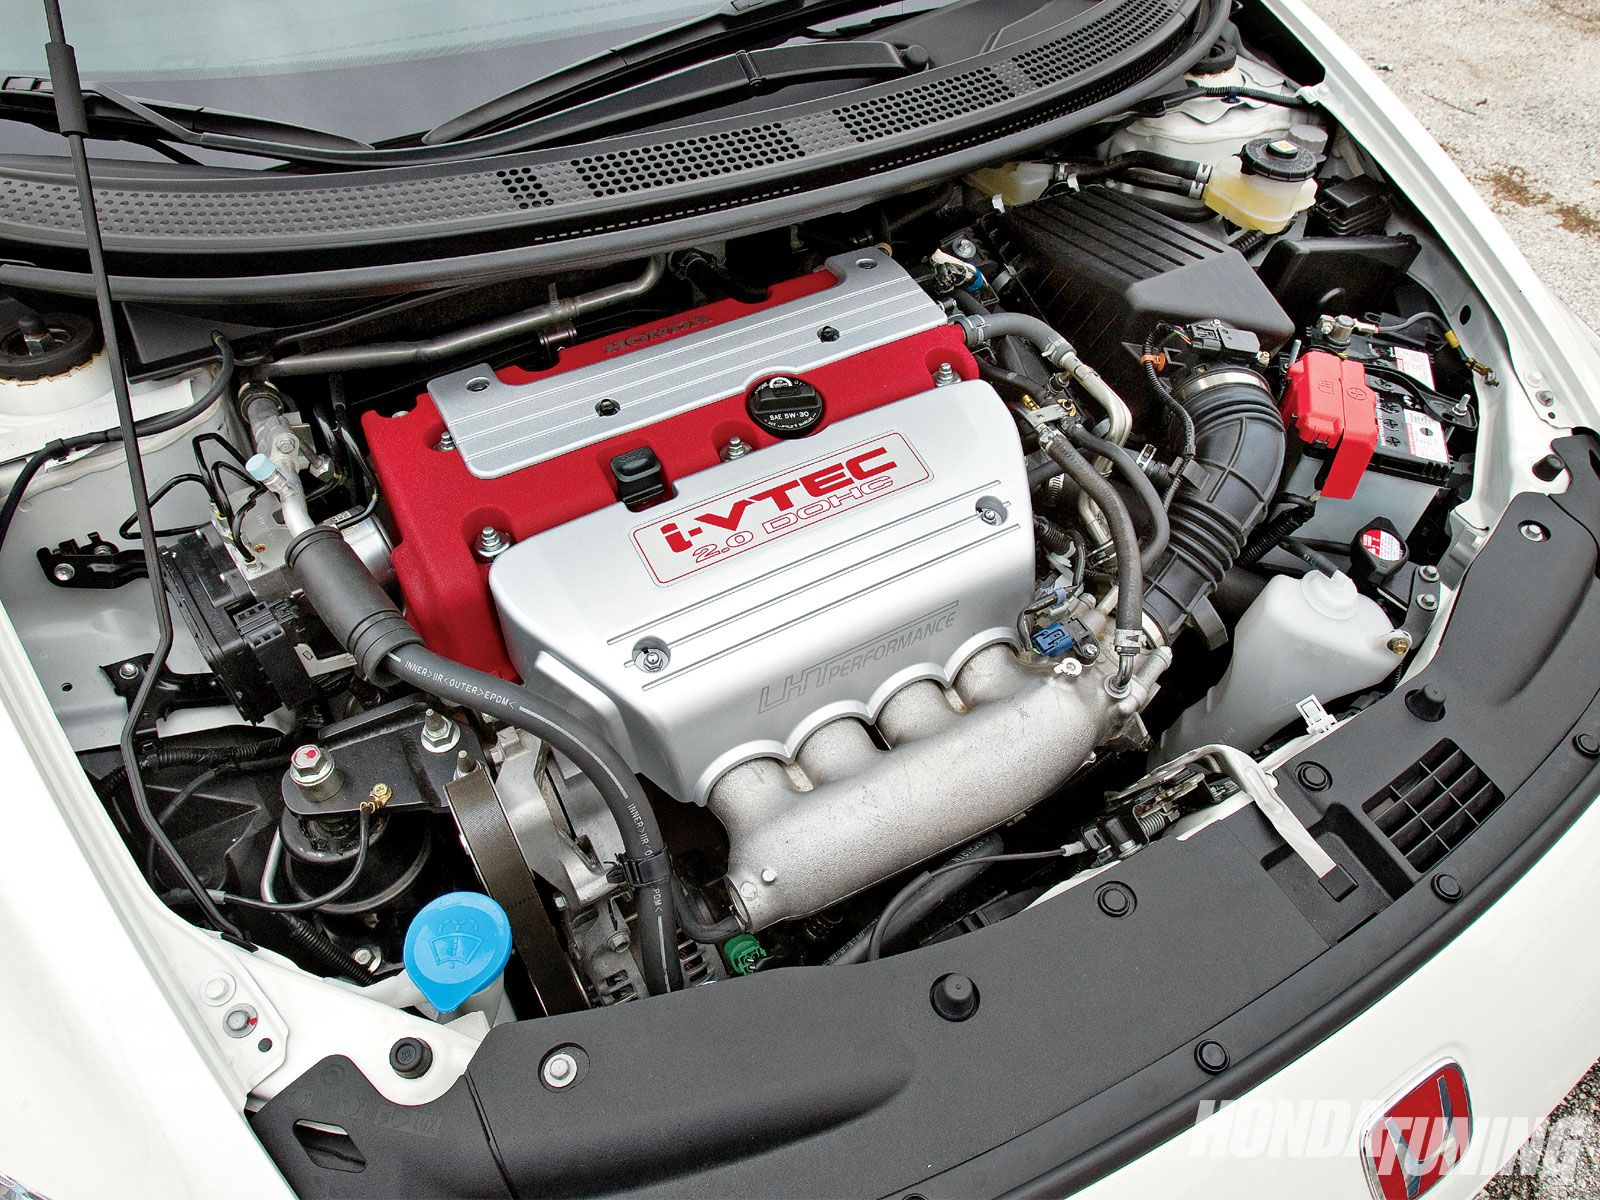 htup_1104_13_o+2010_honda_crz+engine_bay